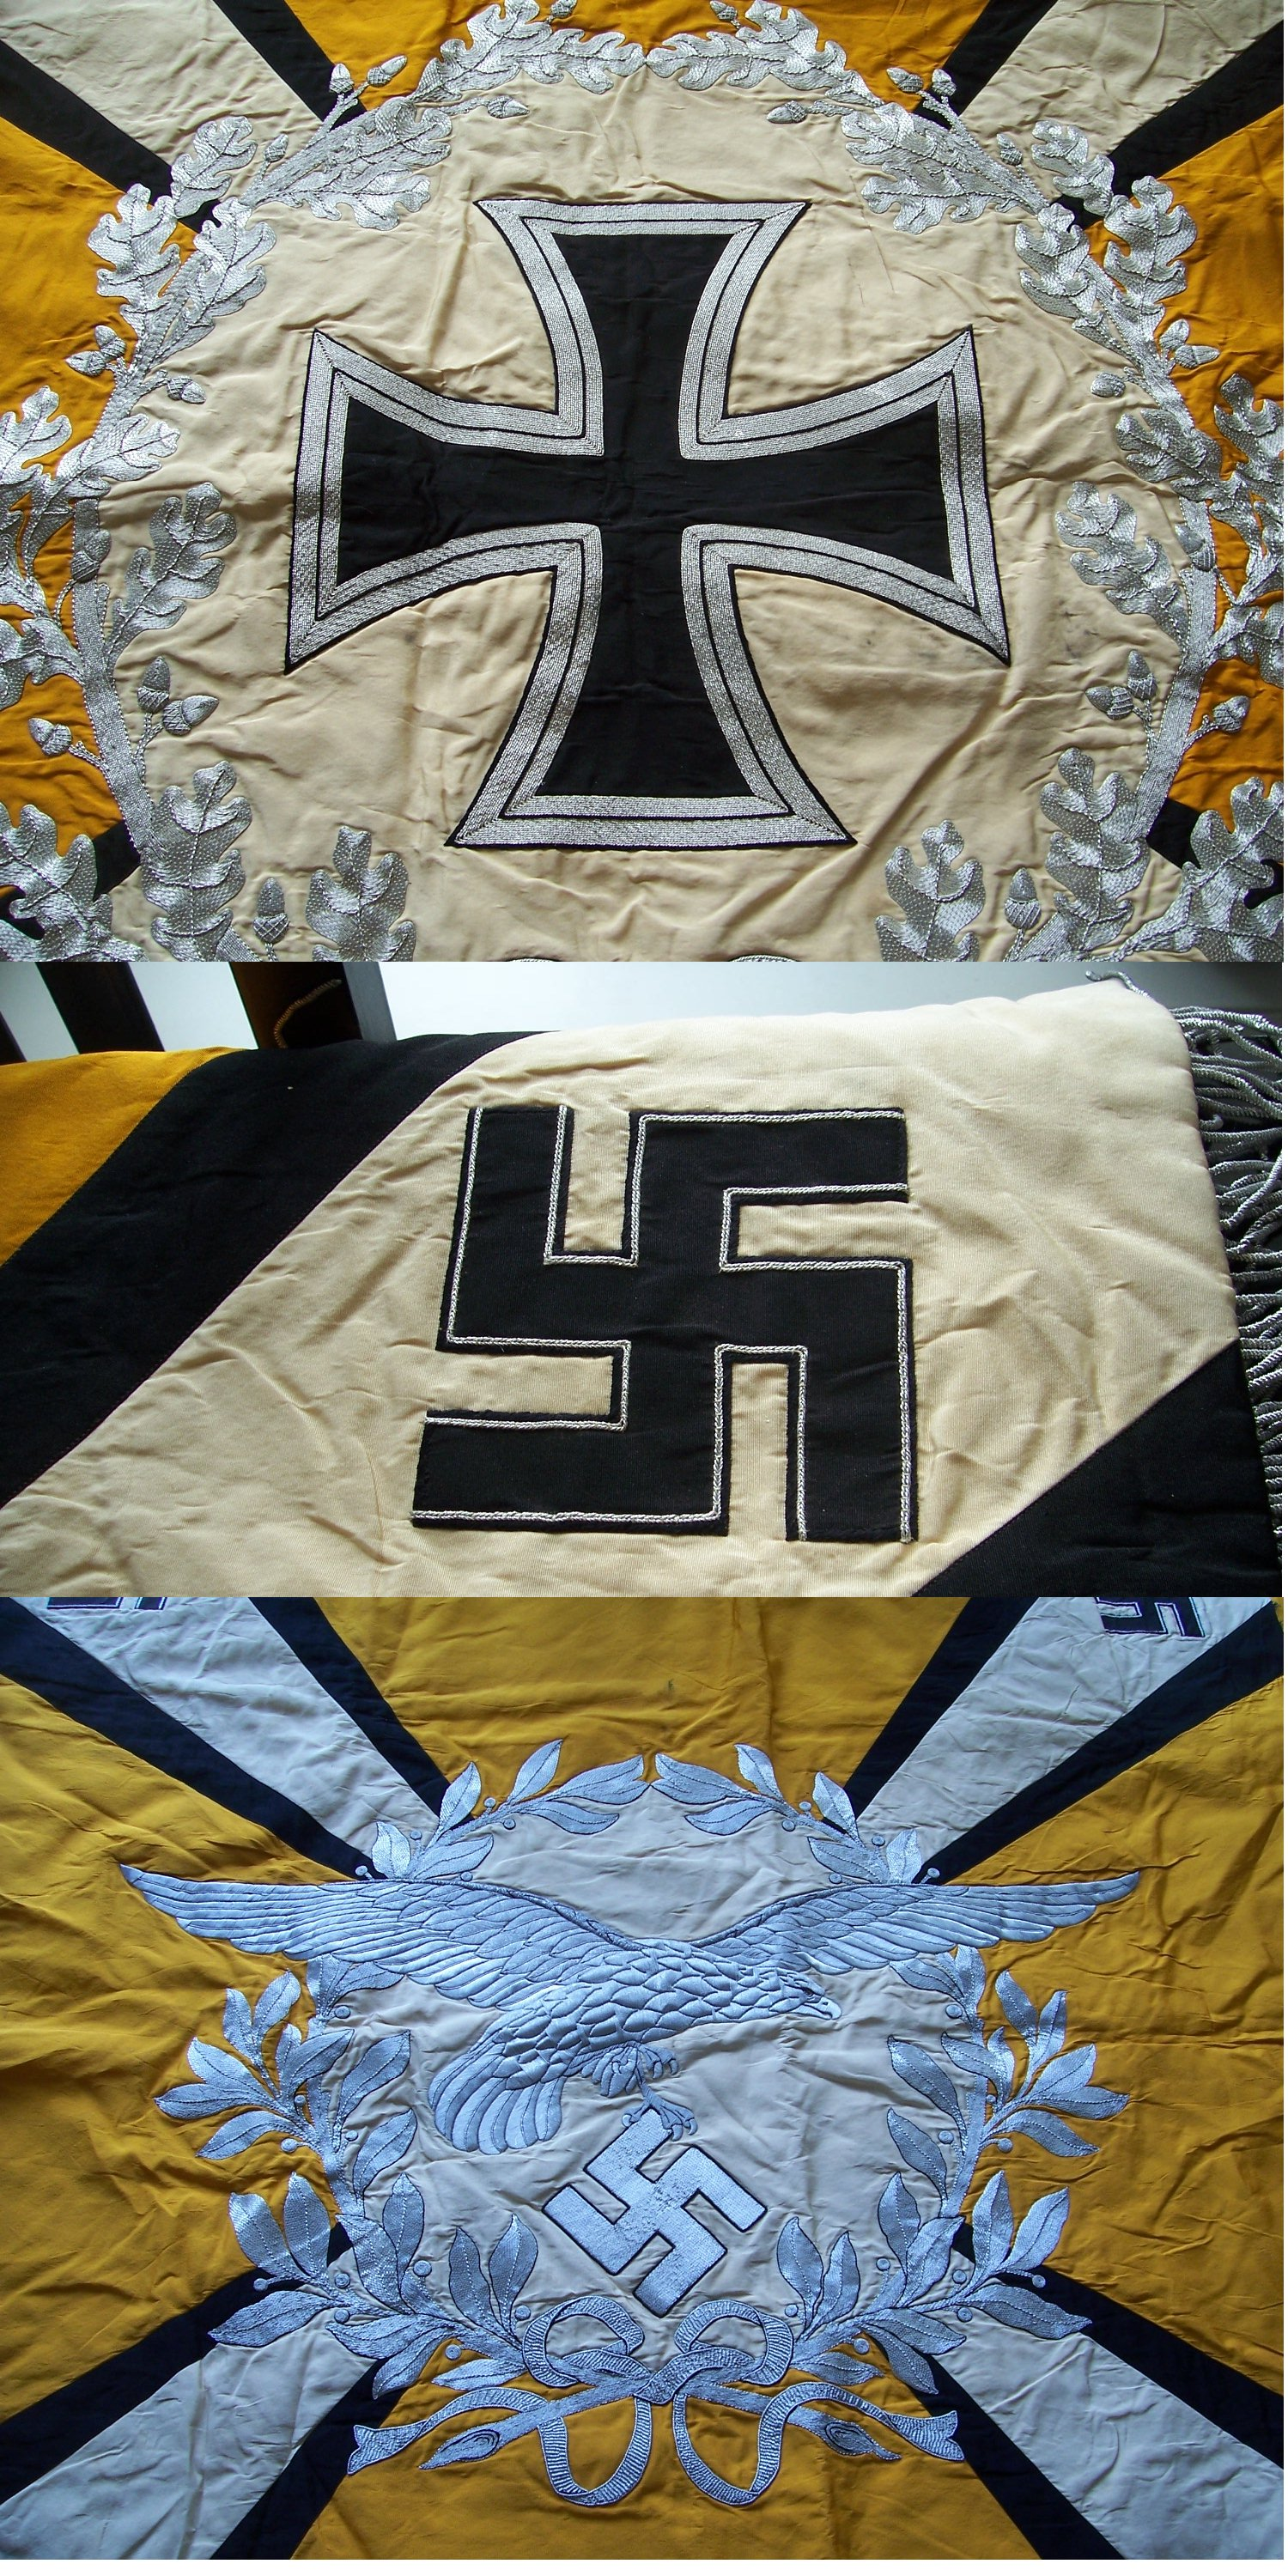 Luftwaffe Regimental Standarte for a Flying Unit